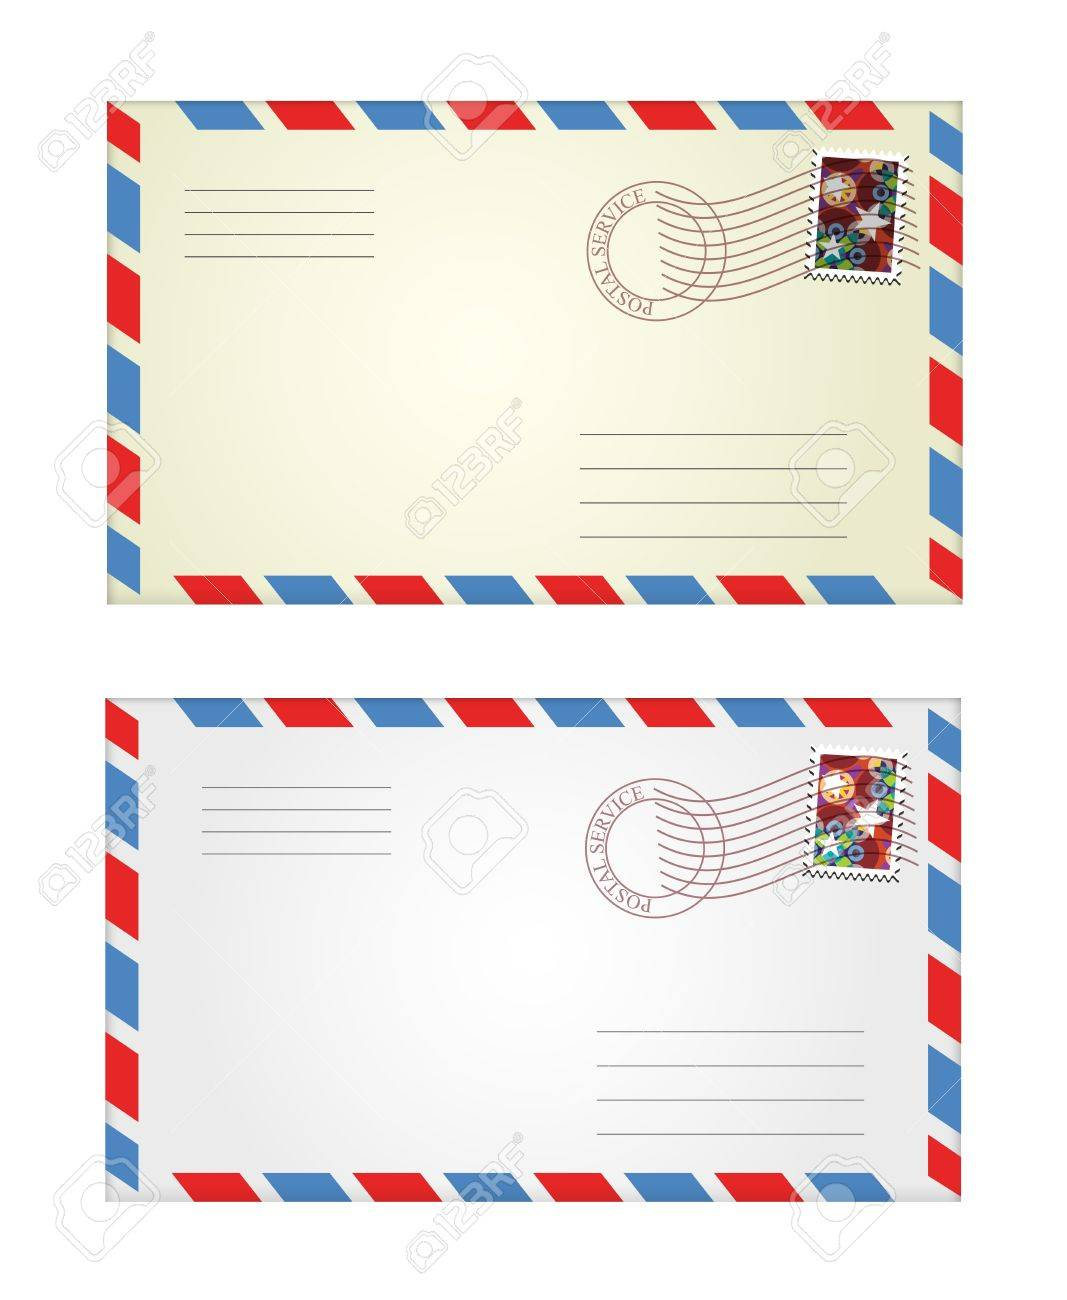 vector illustration of gray and yellow envelopes - 11973019